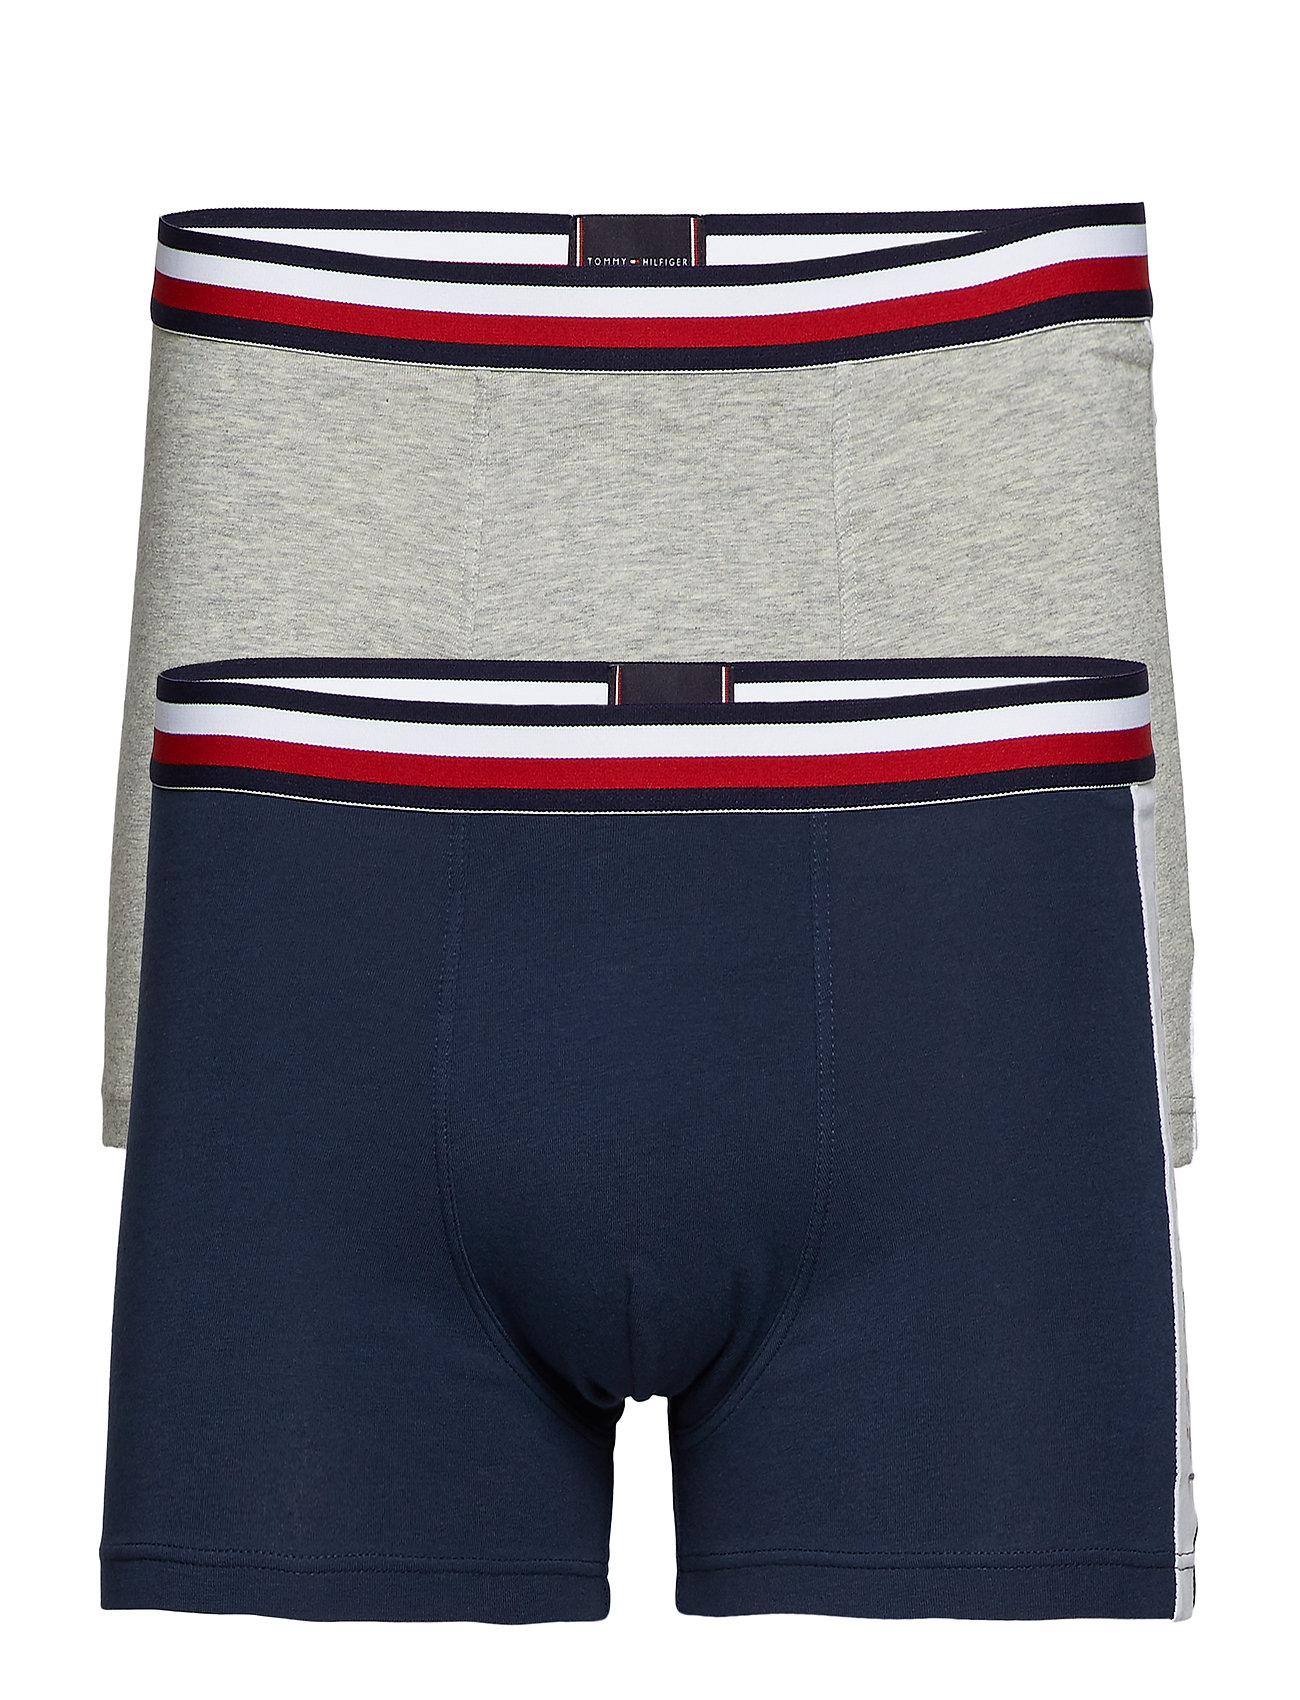 Tommy Hilfiger 2P TRUNK FASHION, 08 - BLACK IRIS/ GREY HEATHER